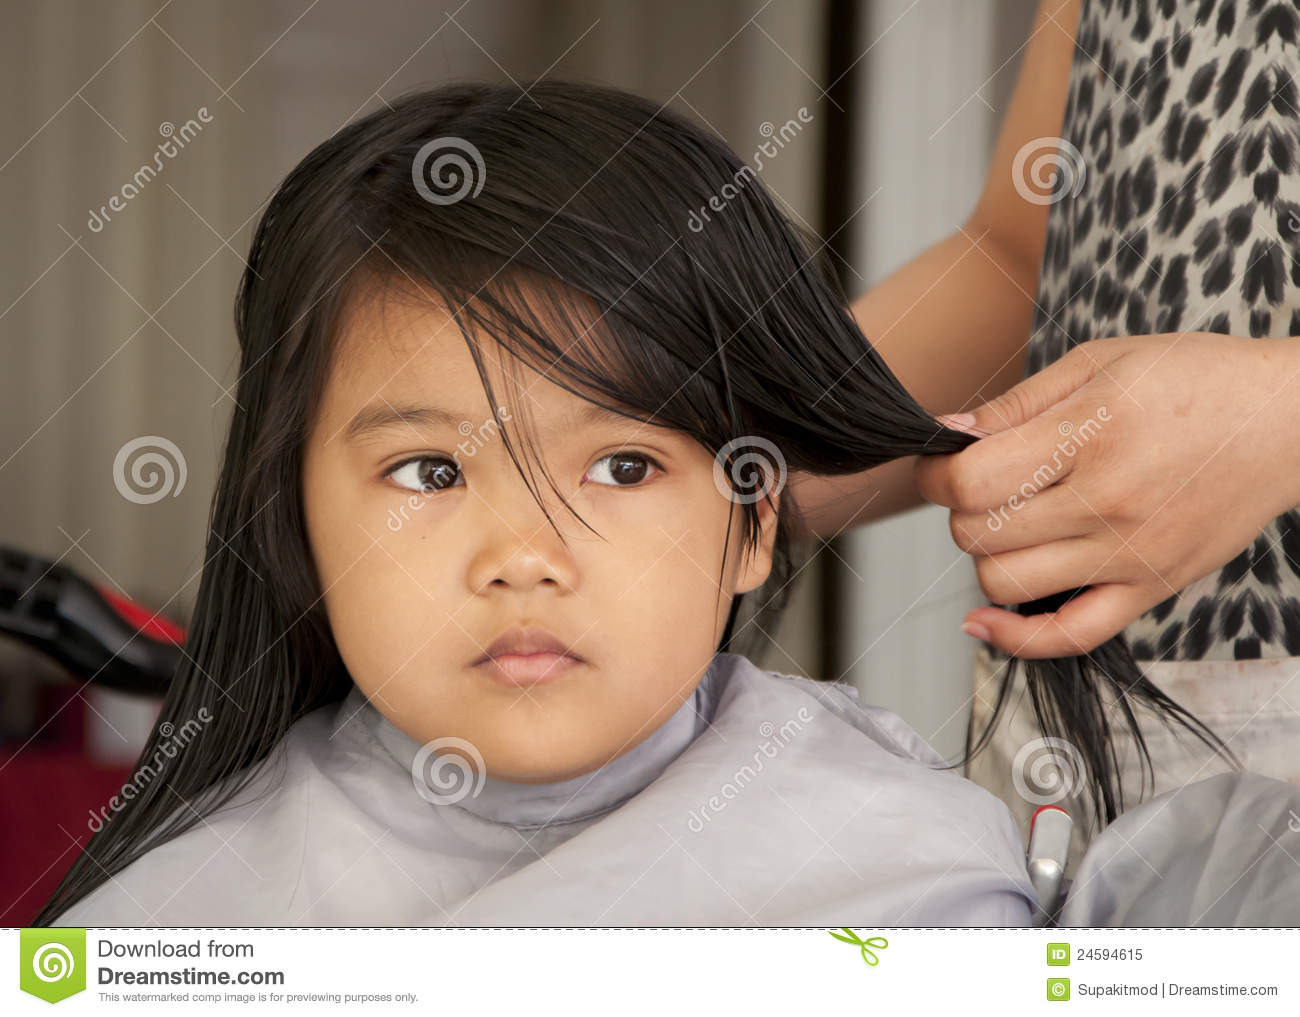 Young Girl Getting A Haircut Stock Image Image Of Cute Girl 24594615